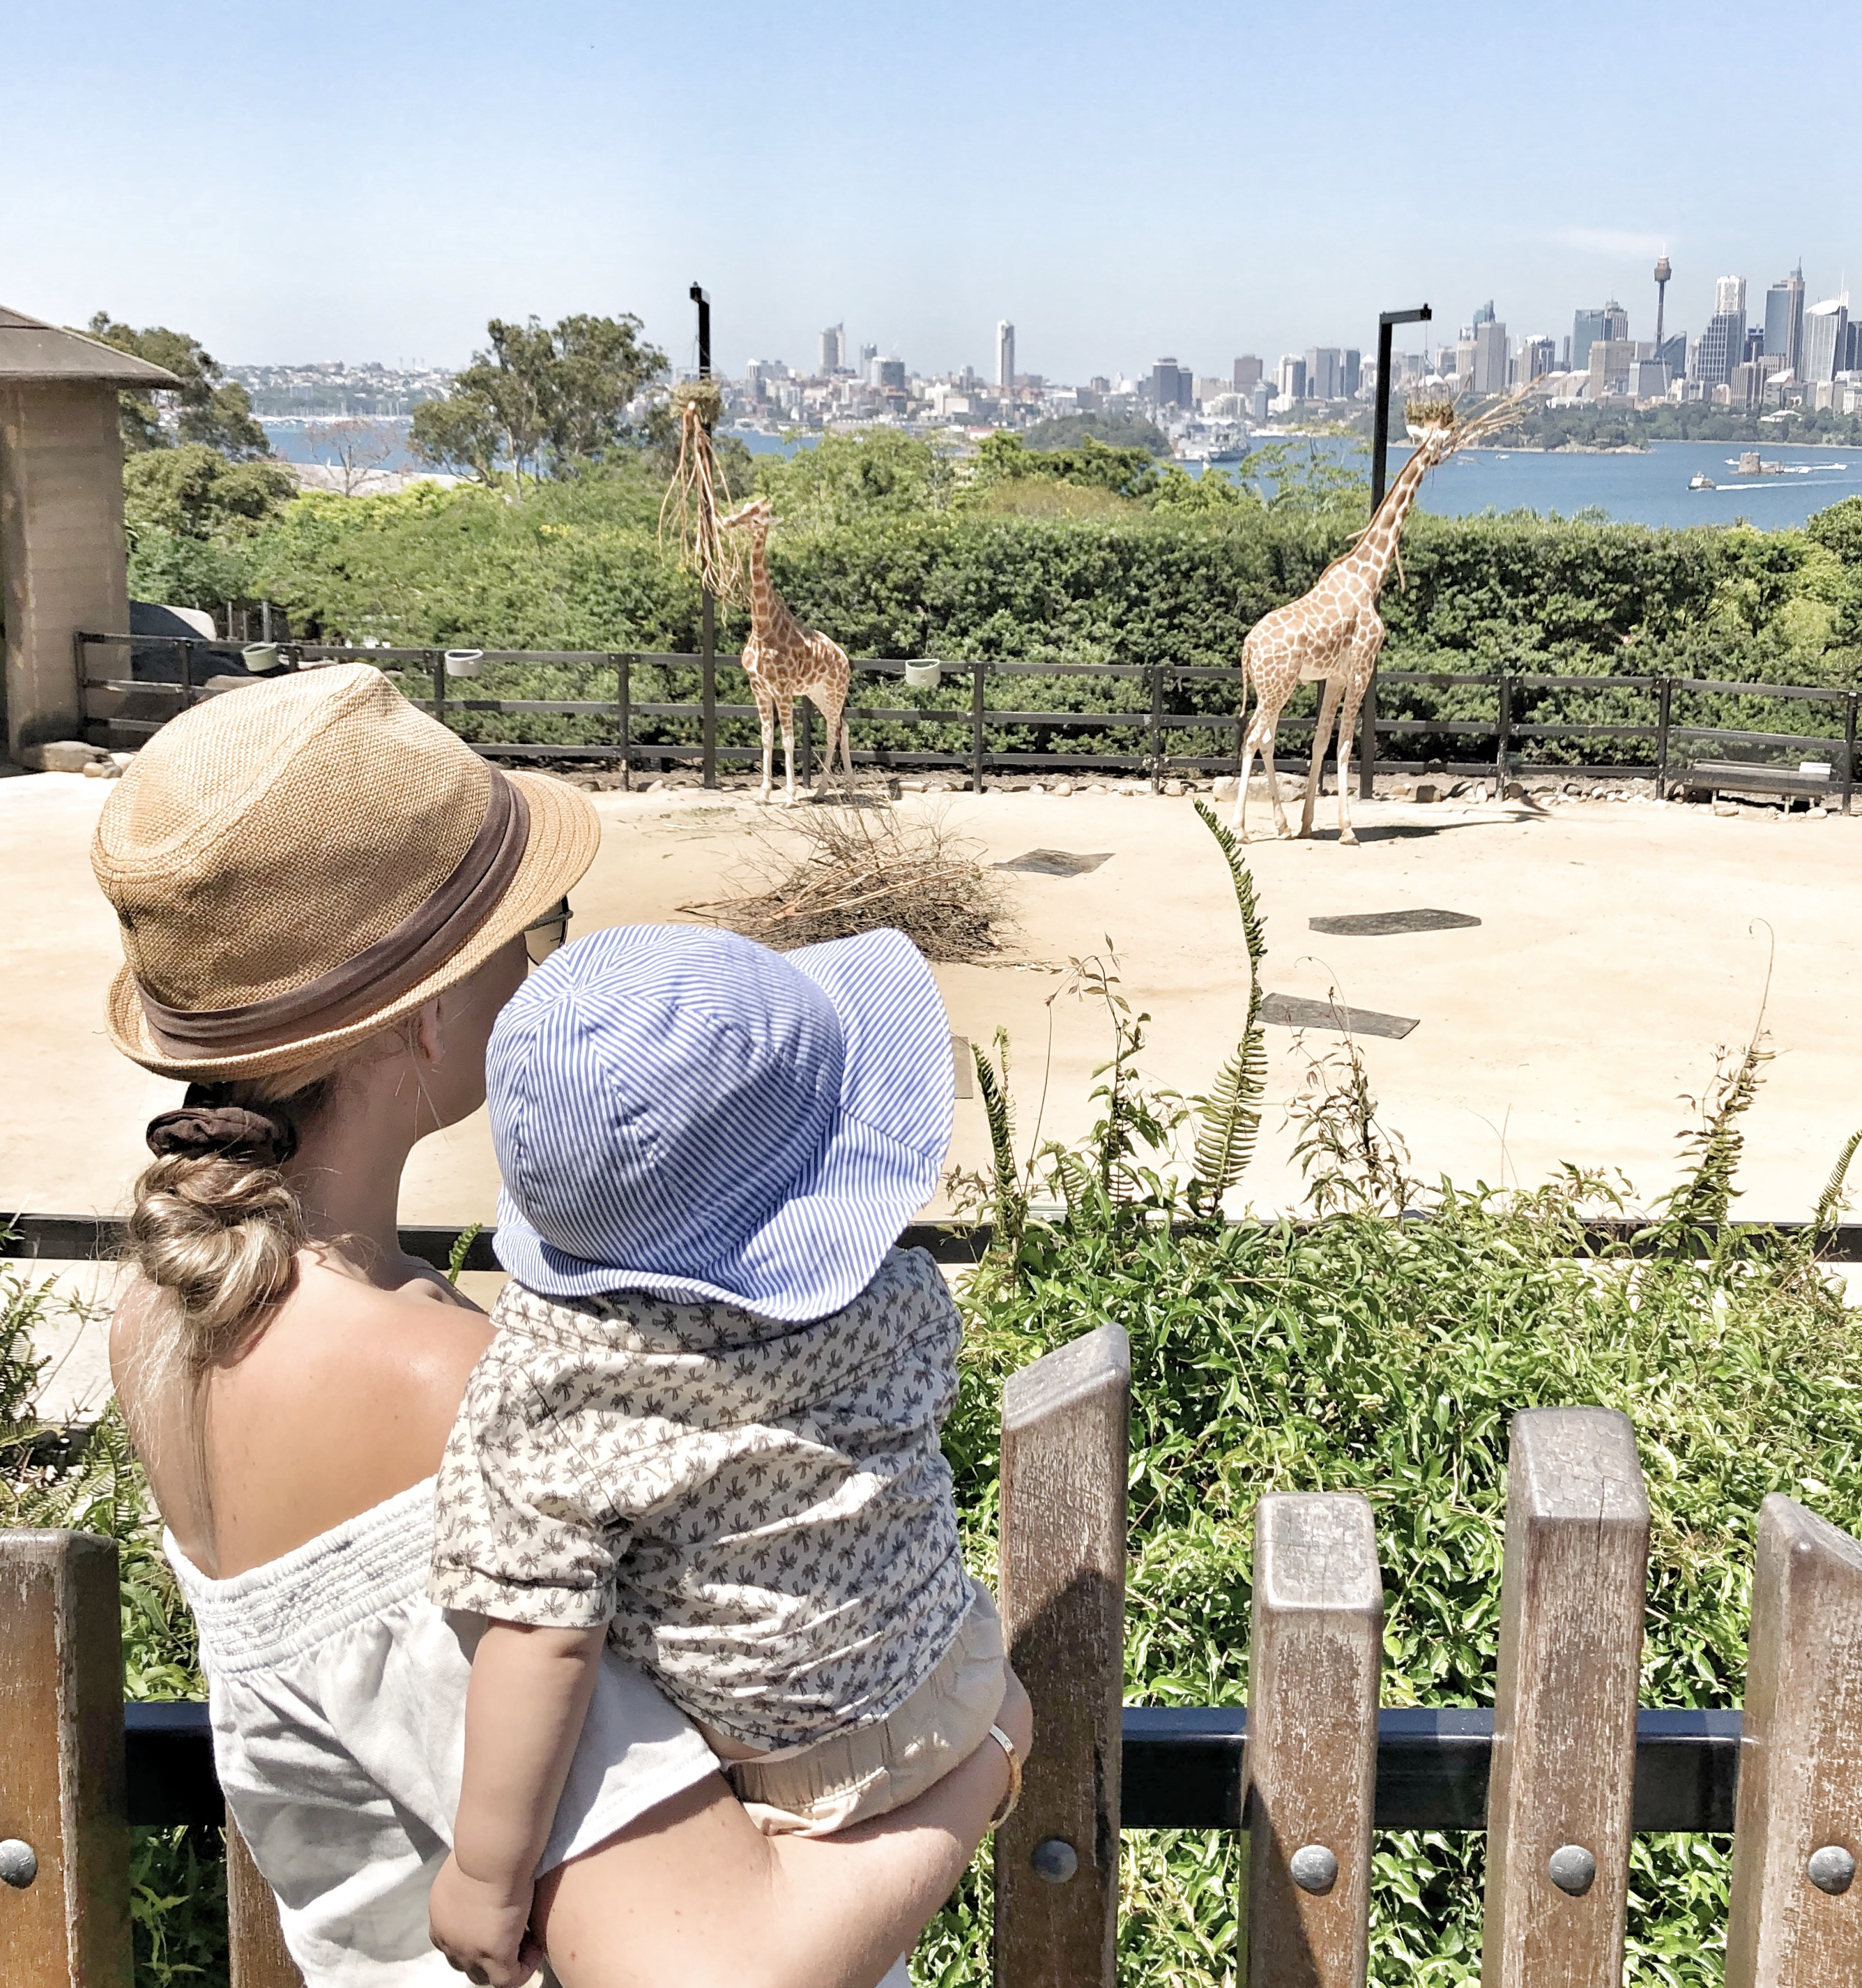 Hudson's first trip to the Zoo